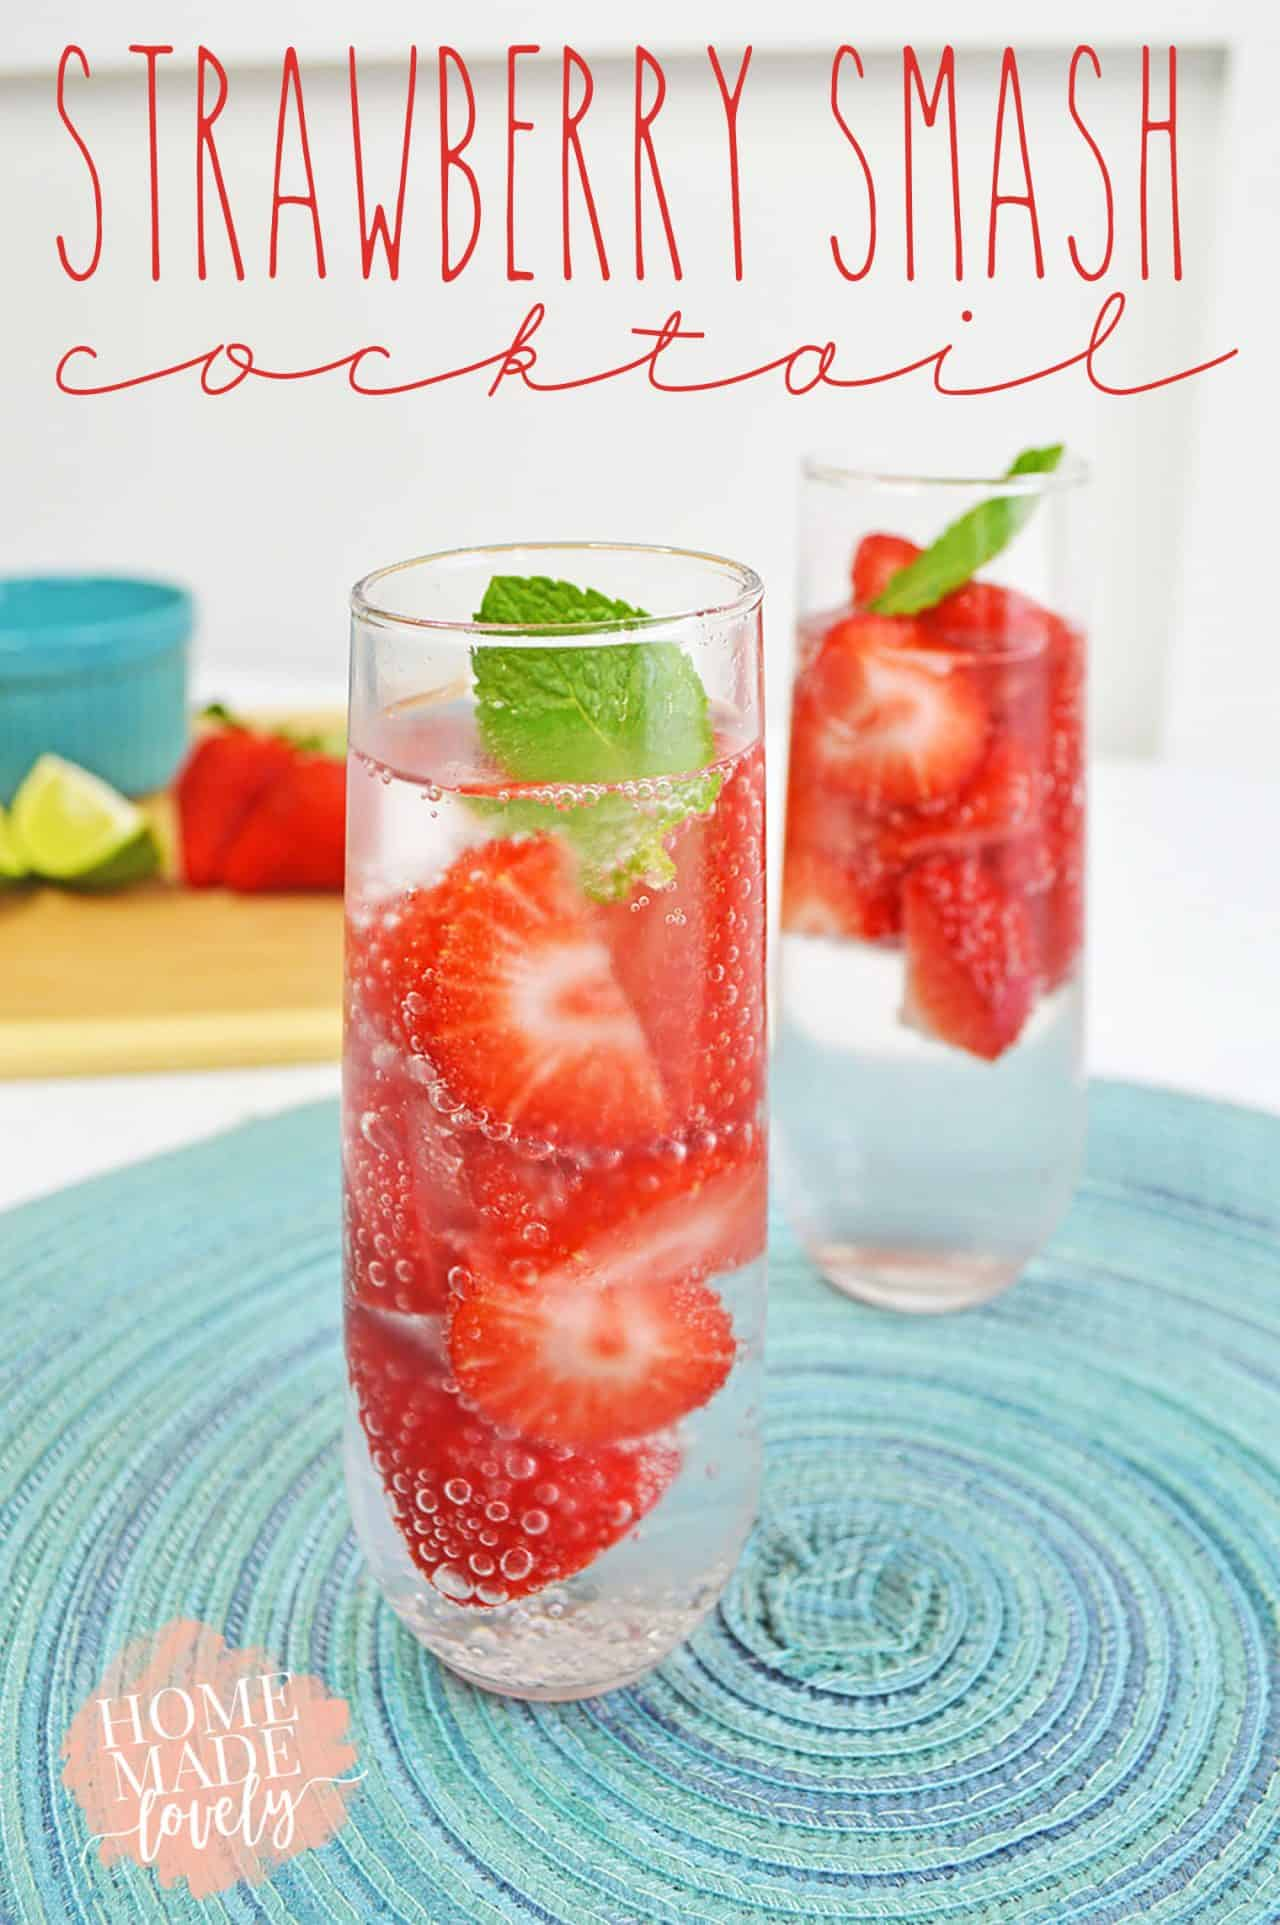 Our Strawberry Smash Cocktail features muddled strawberries and mint for a delicious and refreshing summer drink!